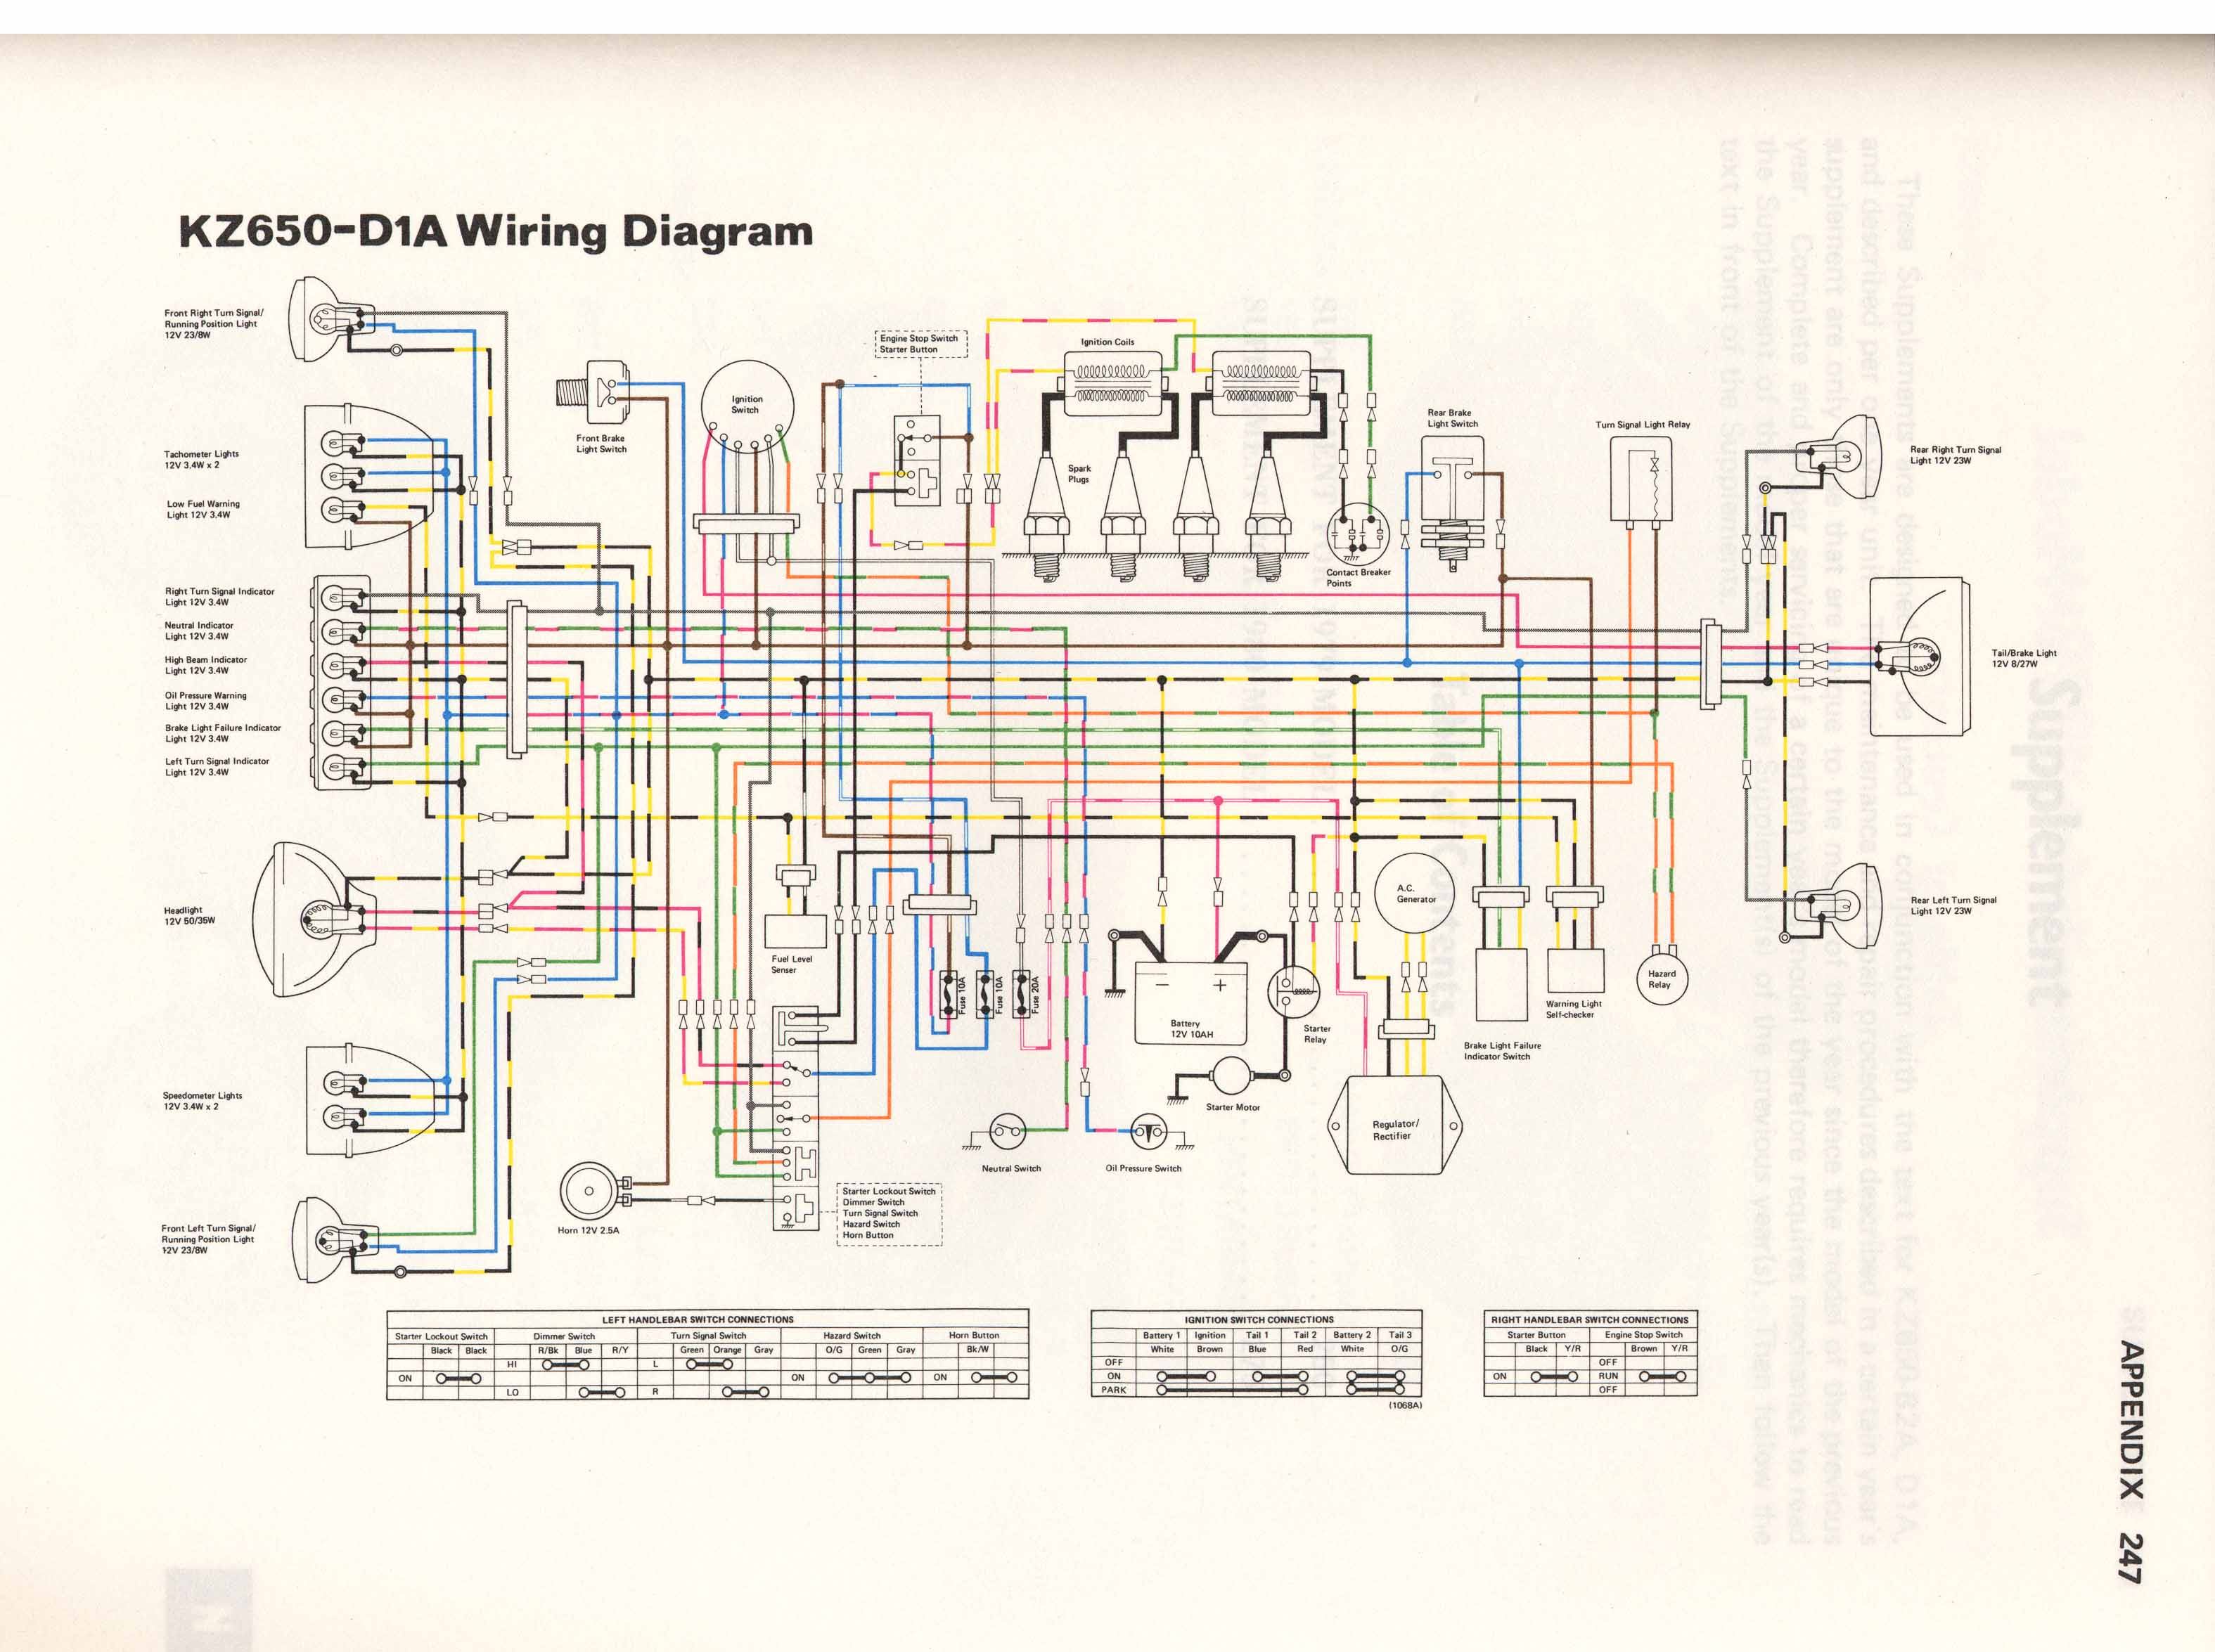 kz650 info wiring diagrams rh diagrams kz650 info Nissan Wiring Diagrams Automotive Nissan Wiring Diagrams Automotive